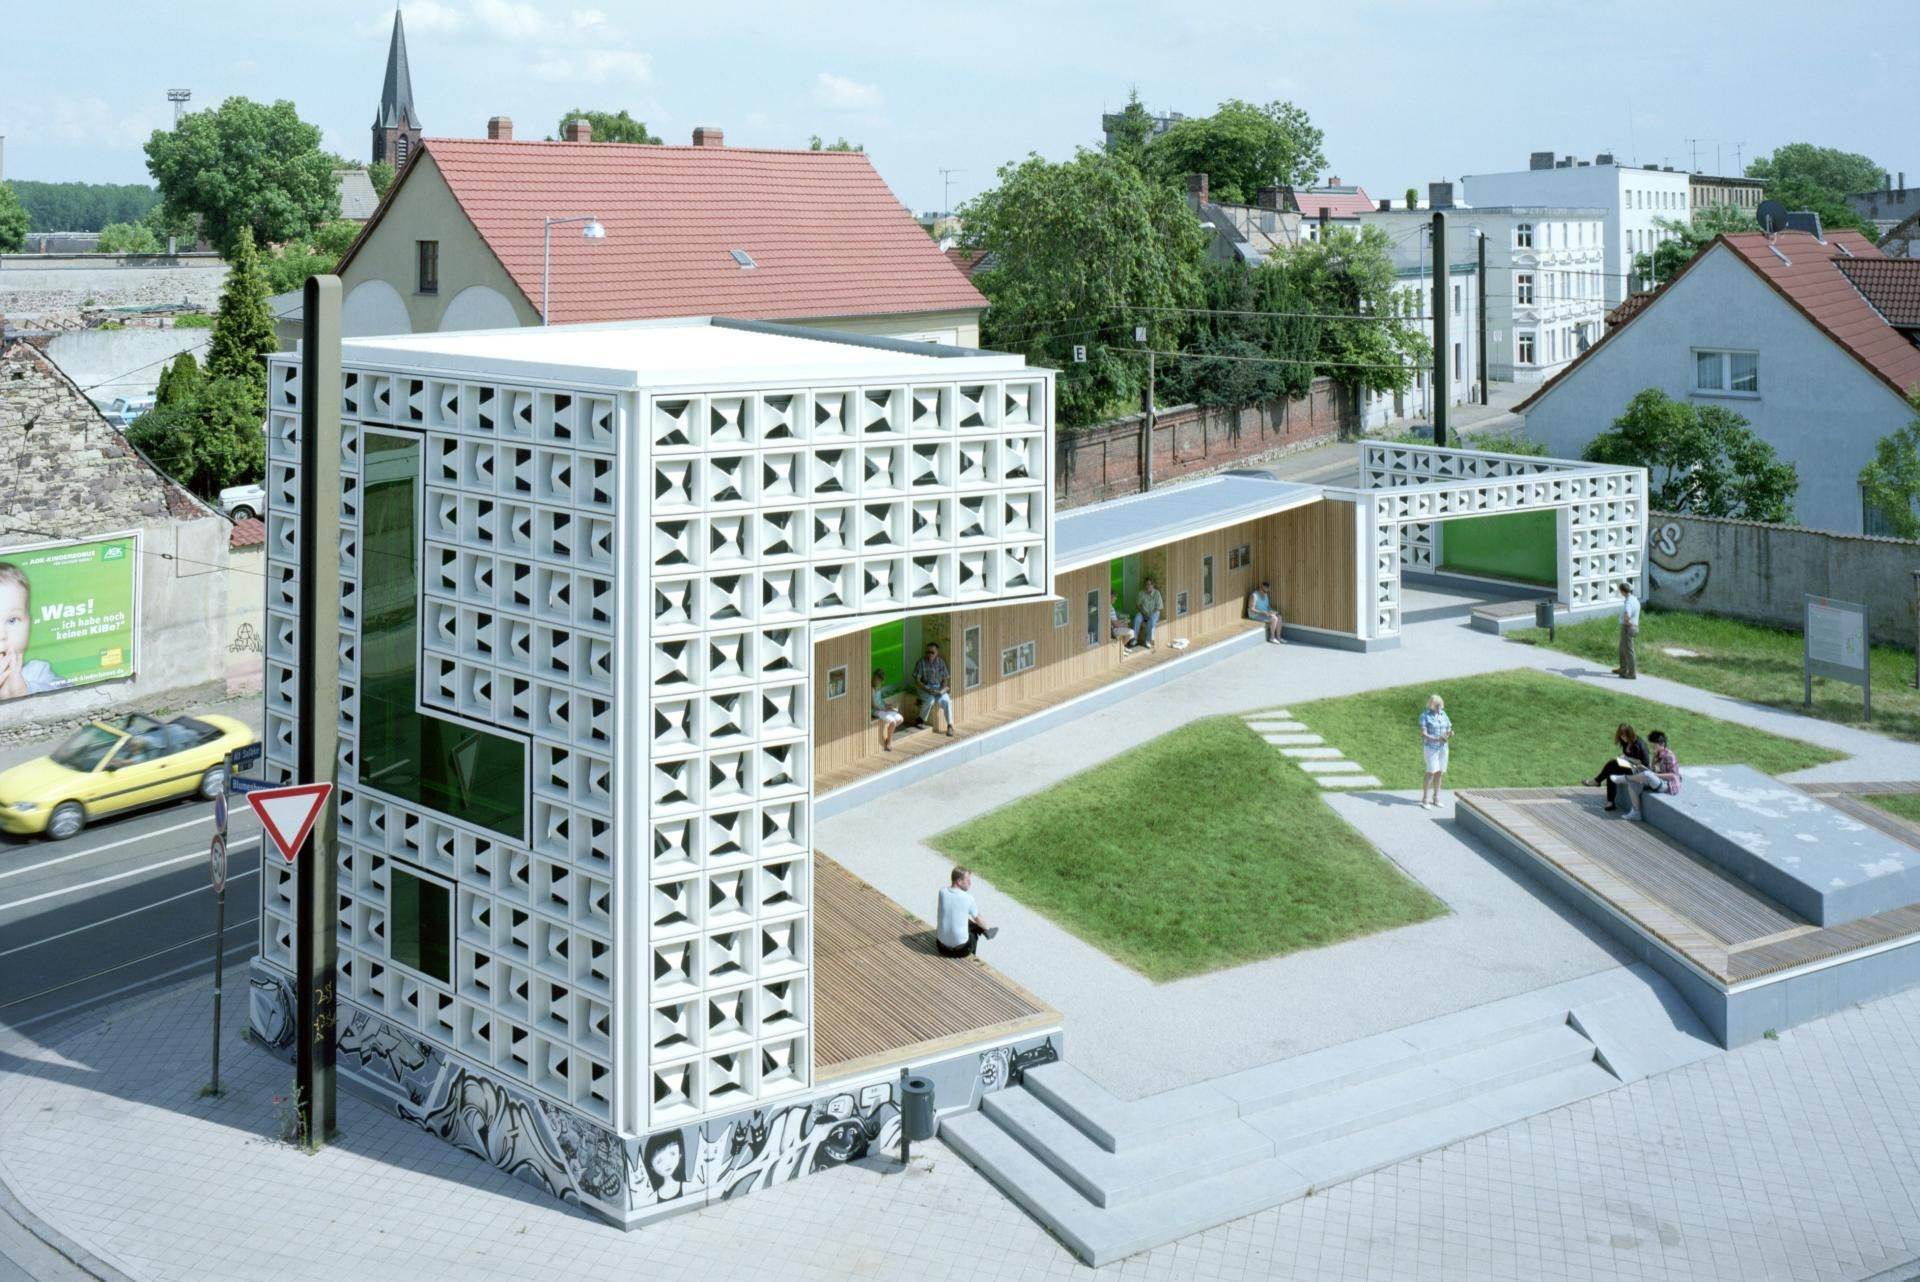 Open Air Library Magdeburg Project for public spaces